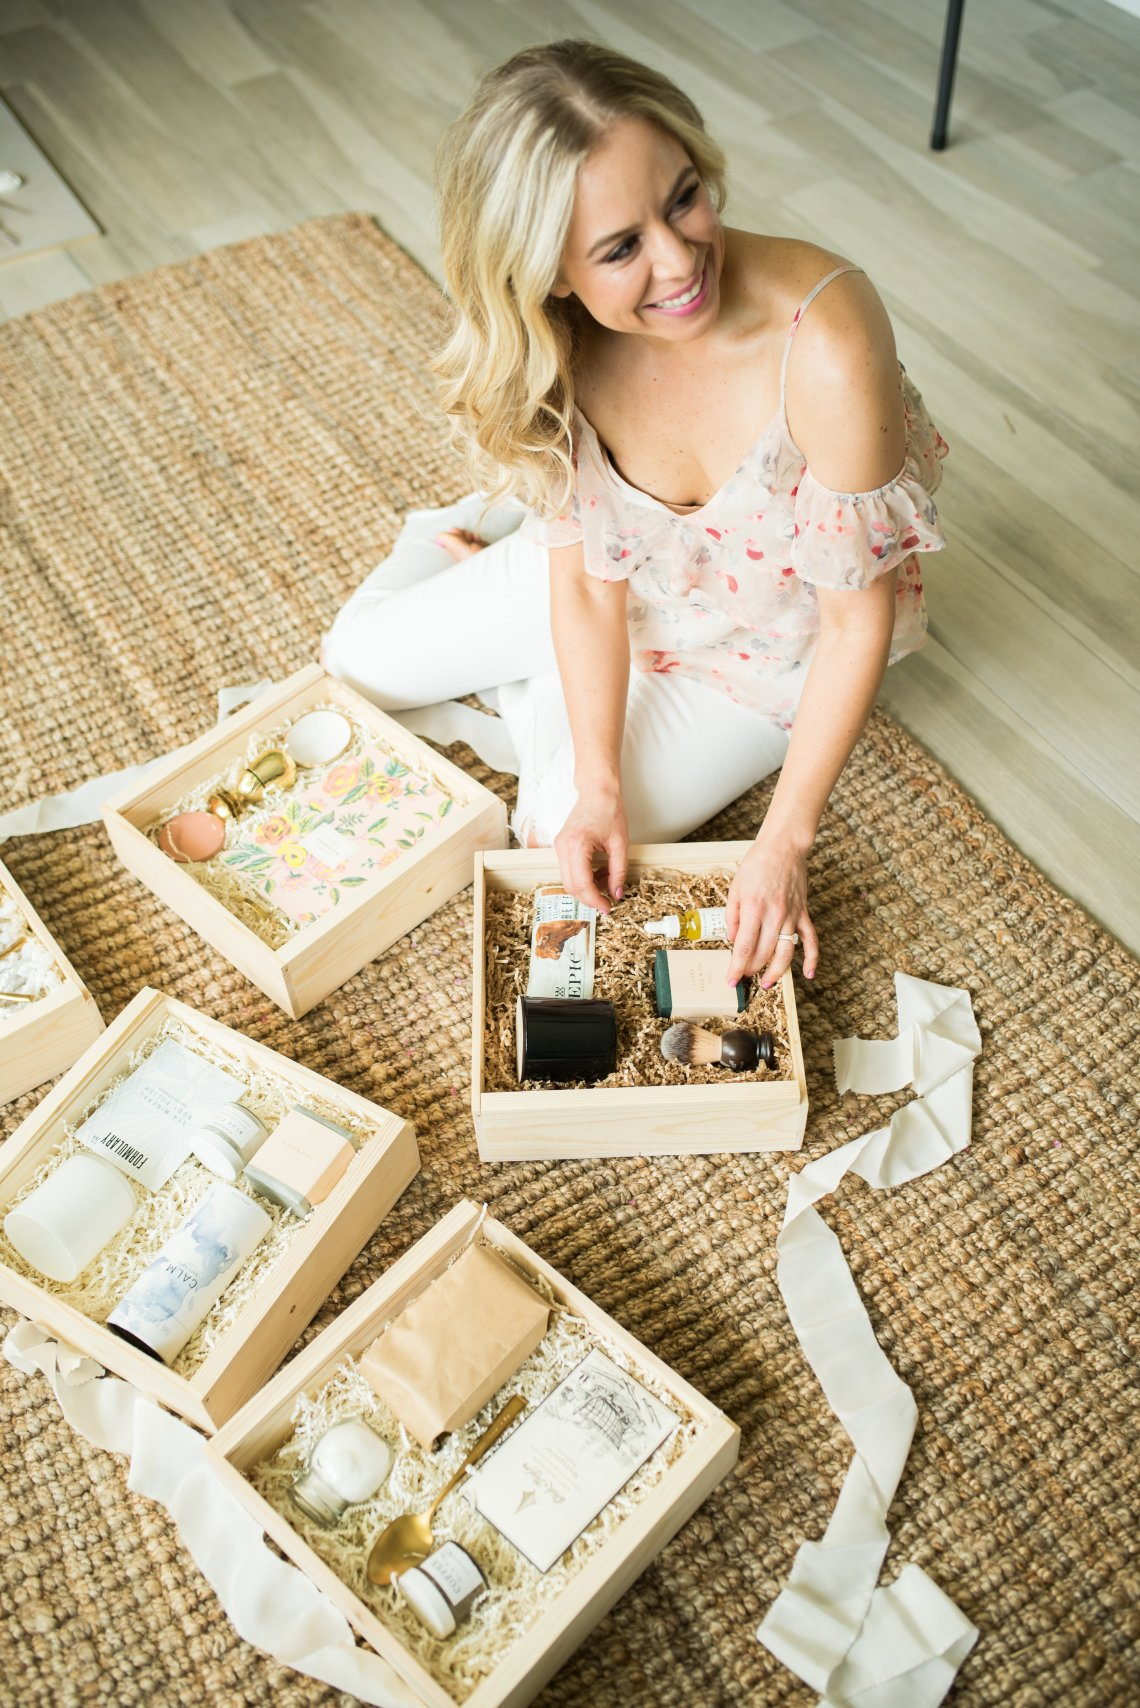 Naomi Martin launches new business - The Presence Co! A curated gift box that focusing on giving back.